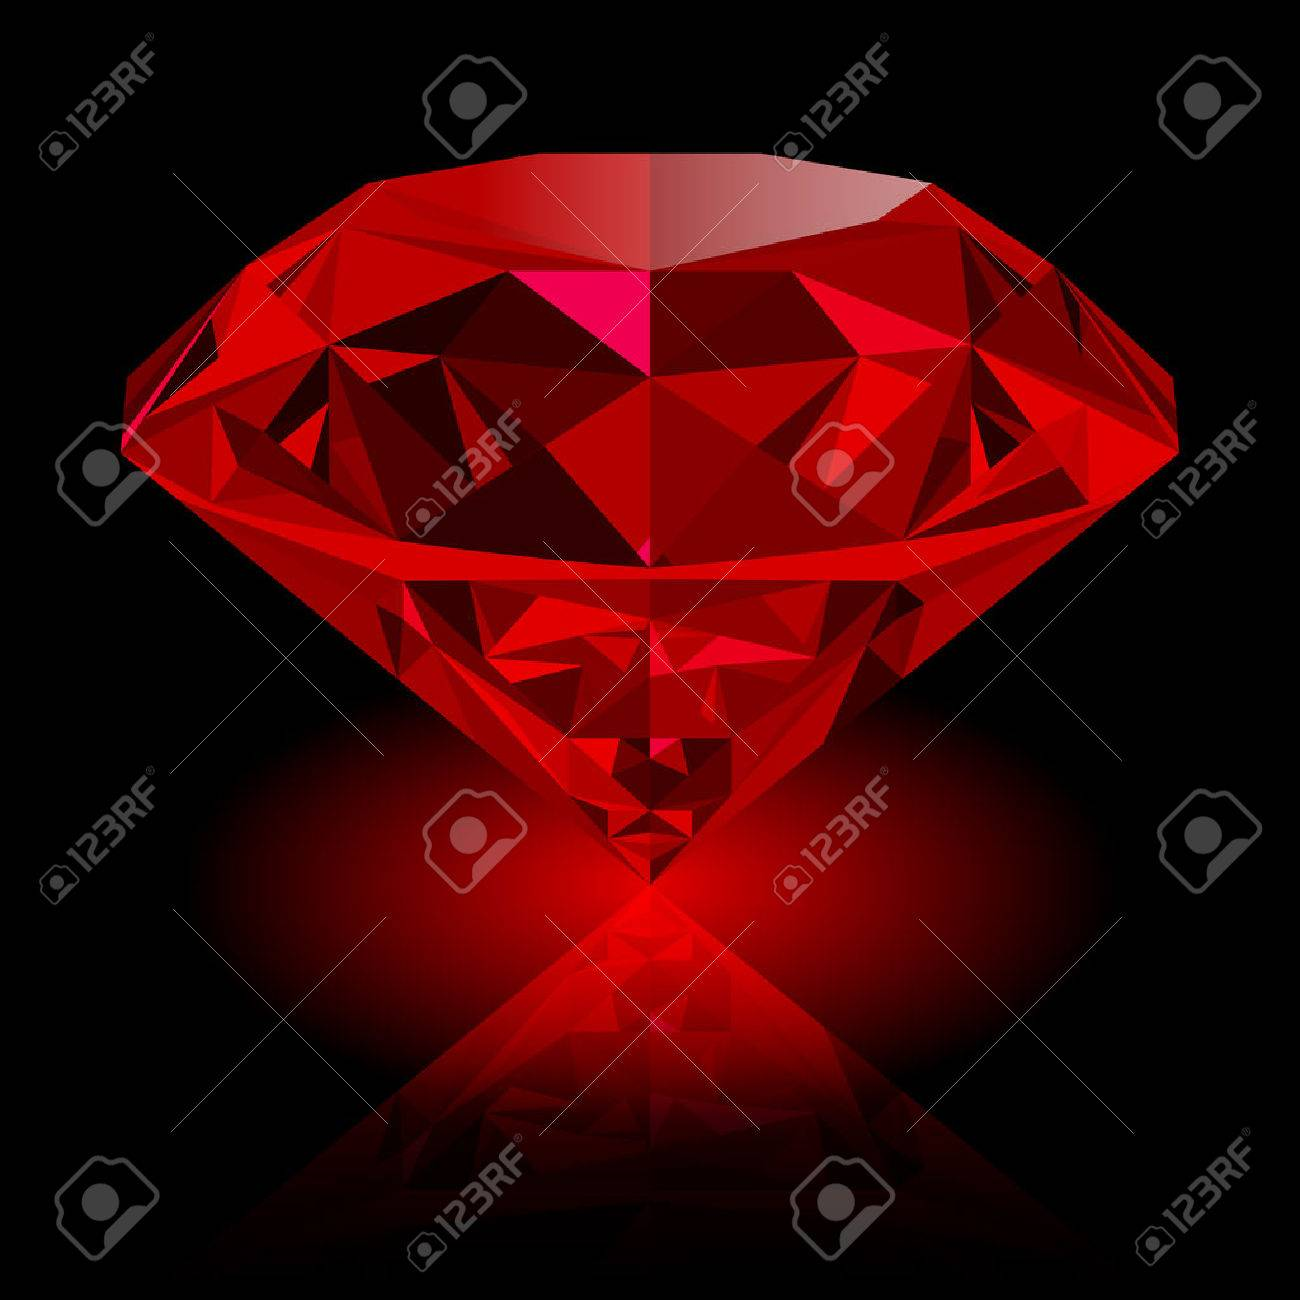 Realistic red ruby with reflection and red glow isolated on black background. Shining red jewel, colorful gemstone. can be used as part of icon, web decor or other design. - 64720835